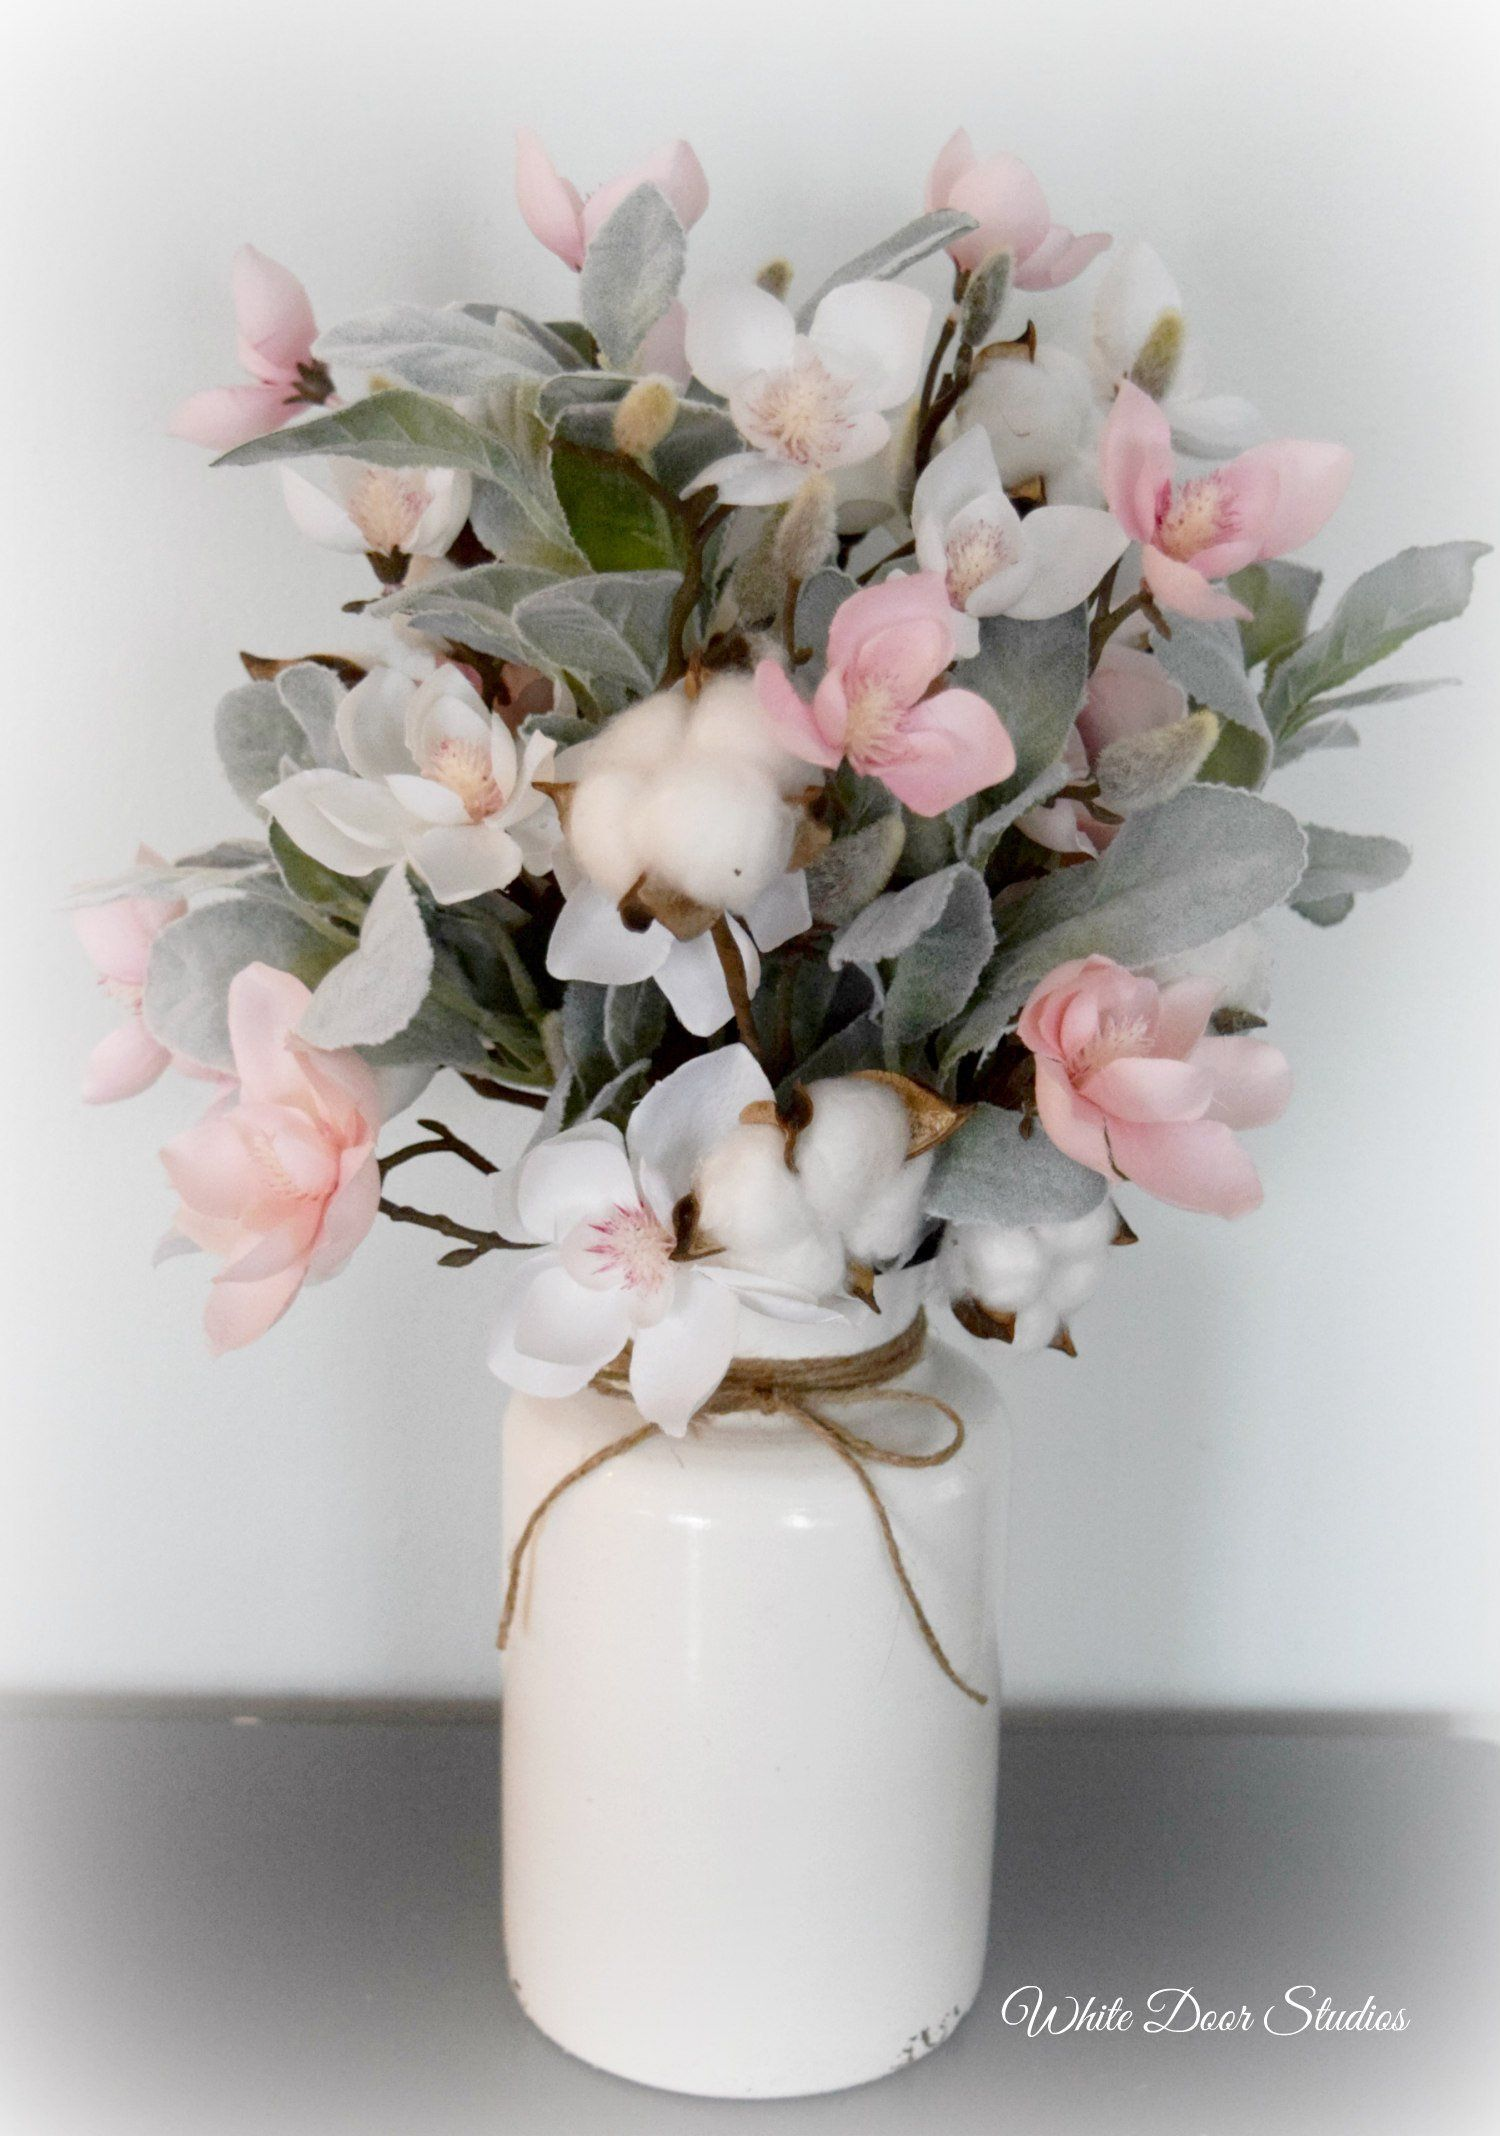 Magnolia And Lambs Ear Farmhouse Floral Arrangement With Cotton Stems Pink And White Home Floral Arrangements Spring Floral Arrangements Flower Arrangements